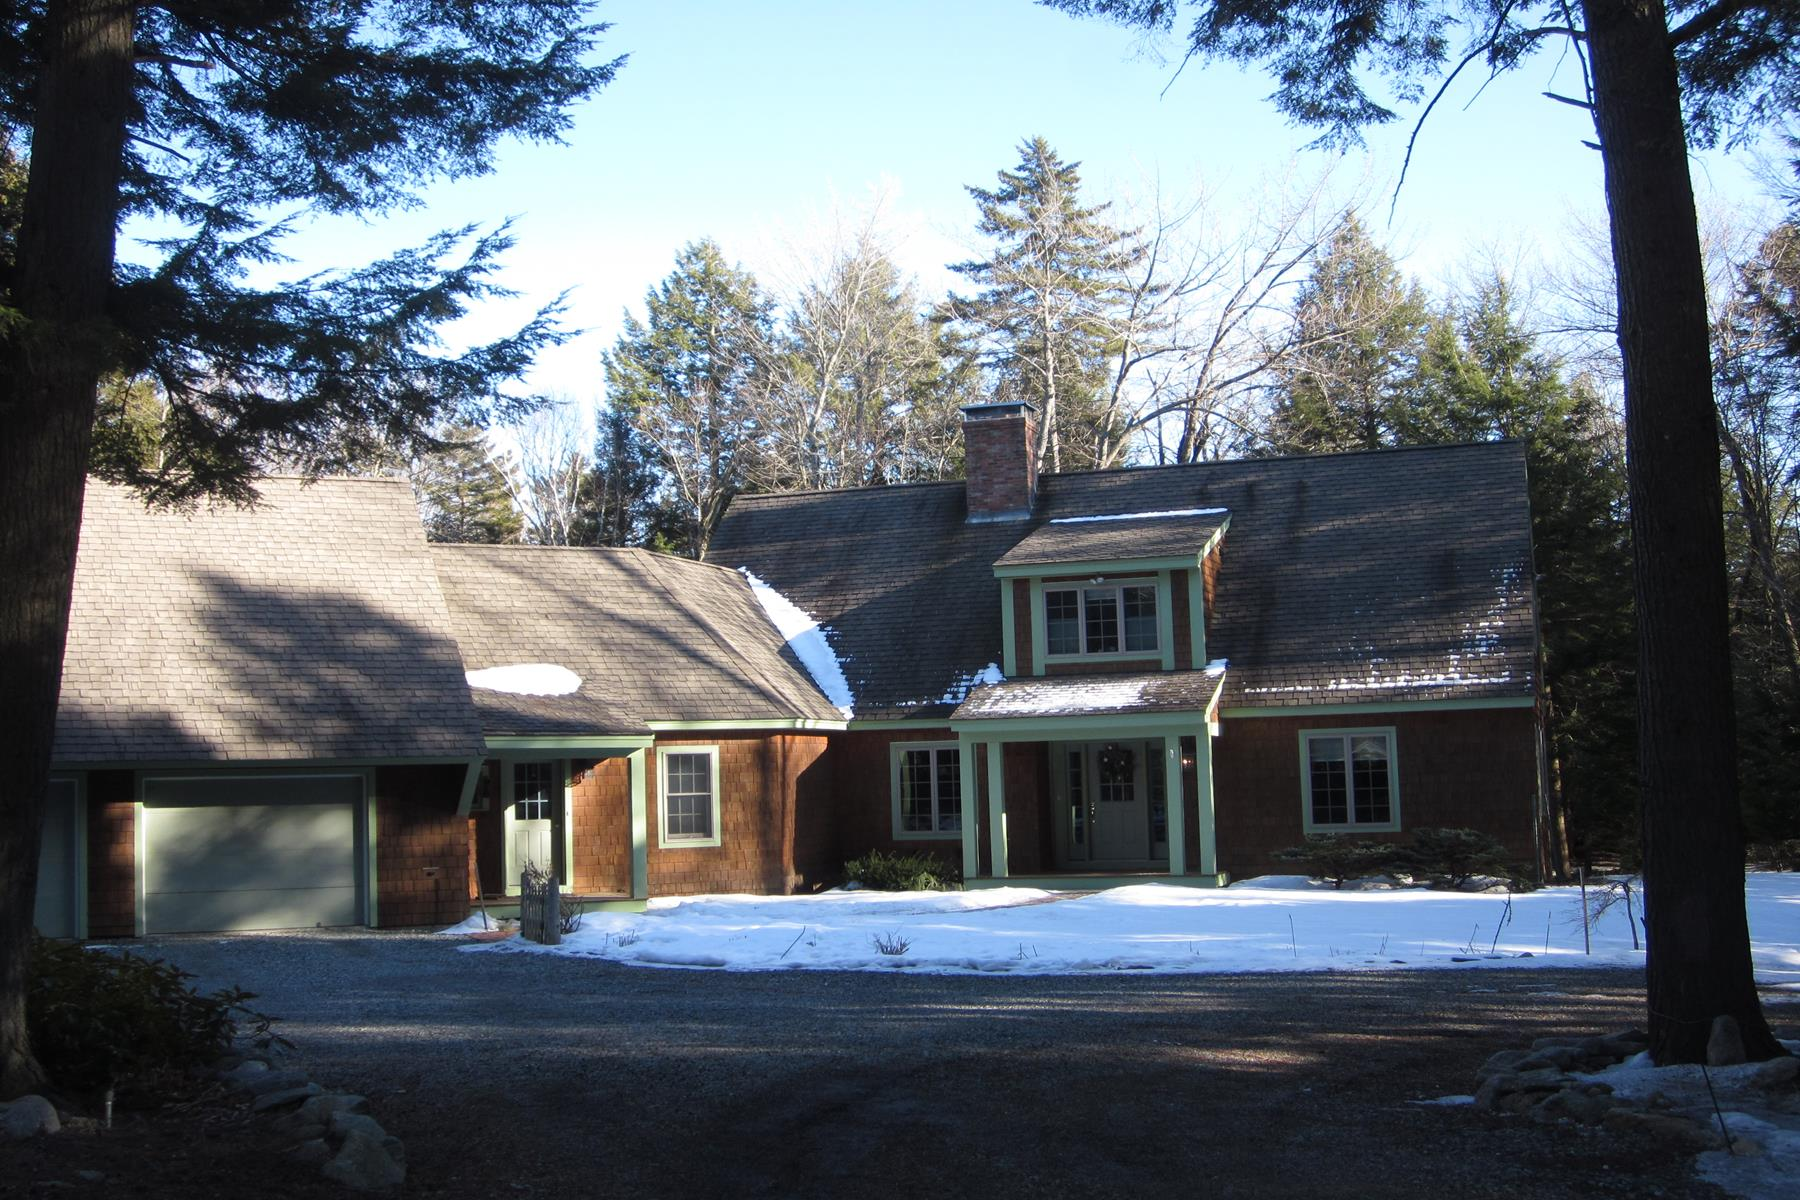 Single Family Home for Sale at 467 Brookside, New London 467 Brookside Dr New London, New Hampshire, 03257 United States